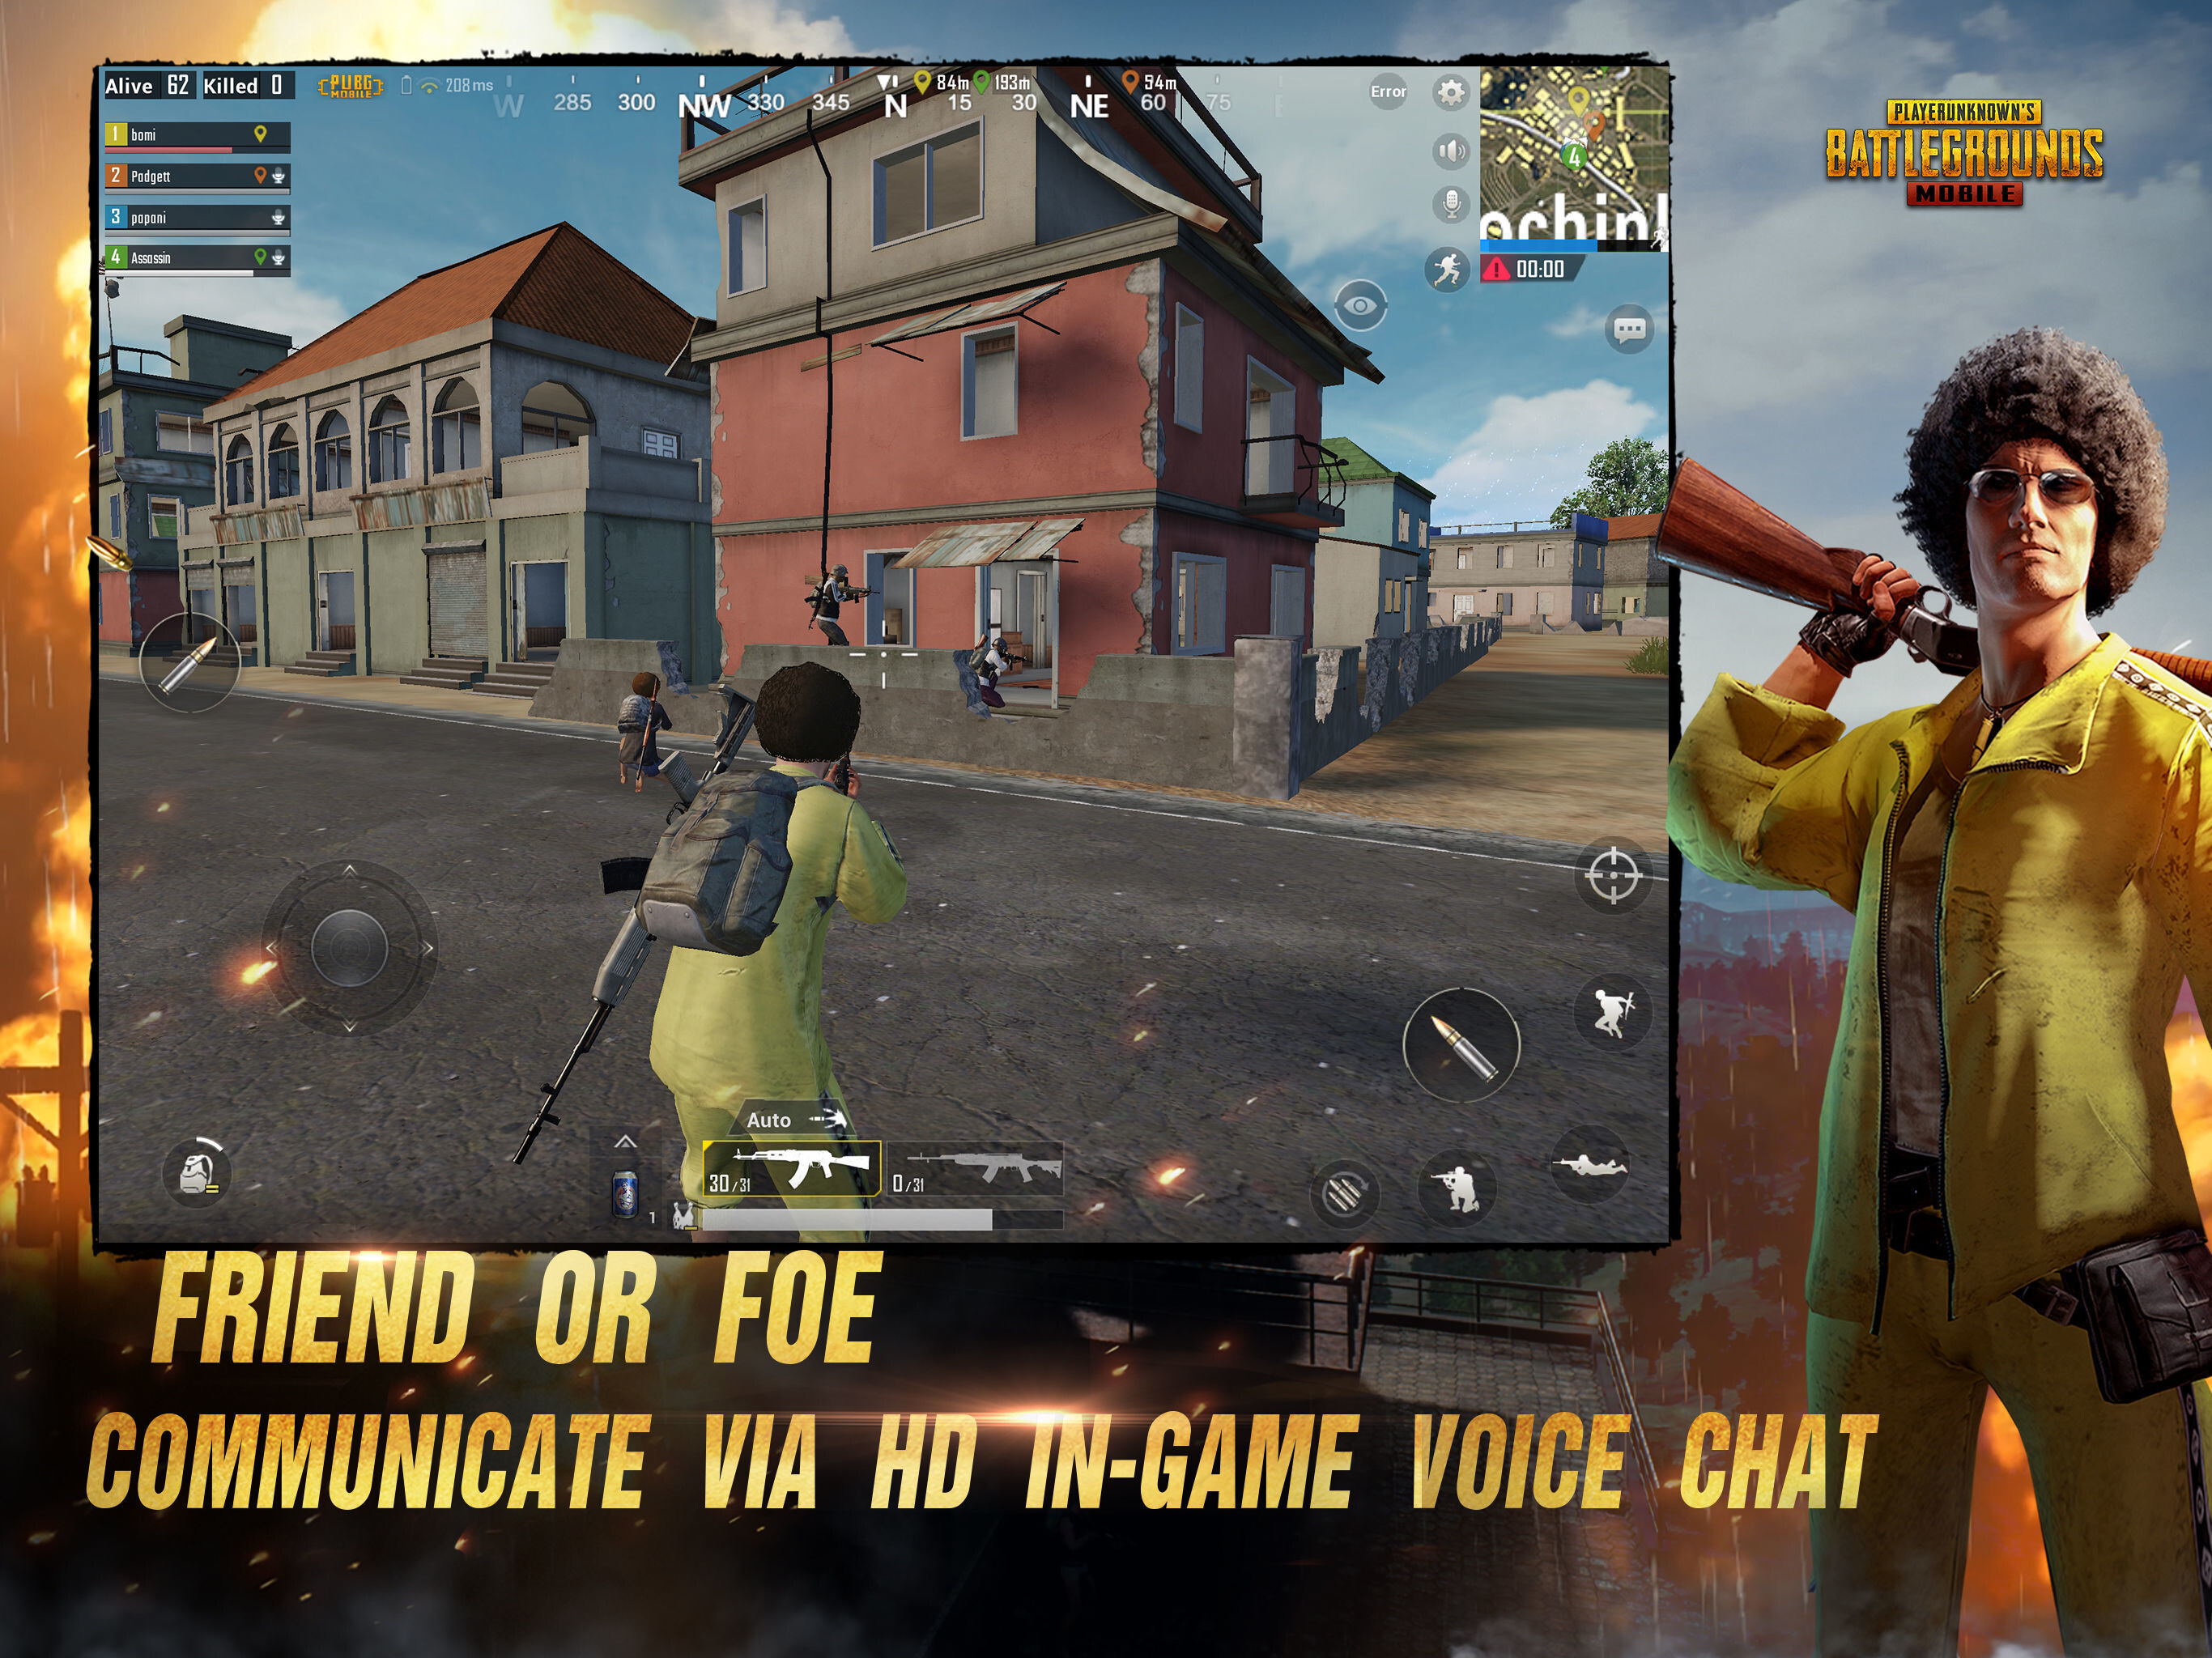 Pubg Mobile Hdr Realistic On Iphone 7: Best Free IOS Games To Play On Your IPhone Or IPad In 2018